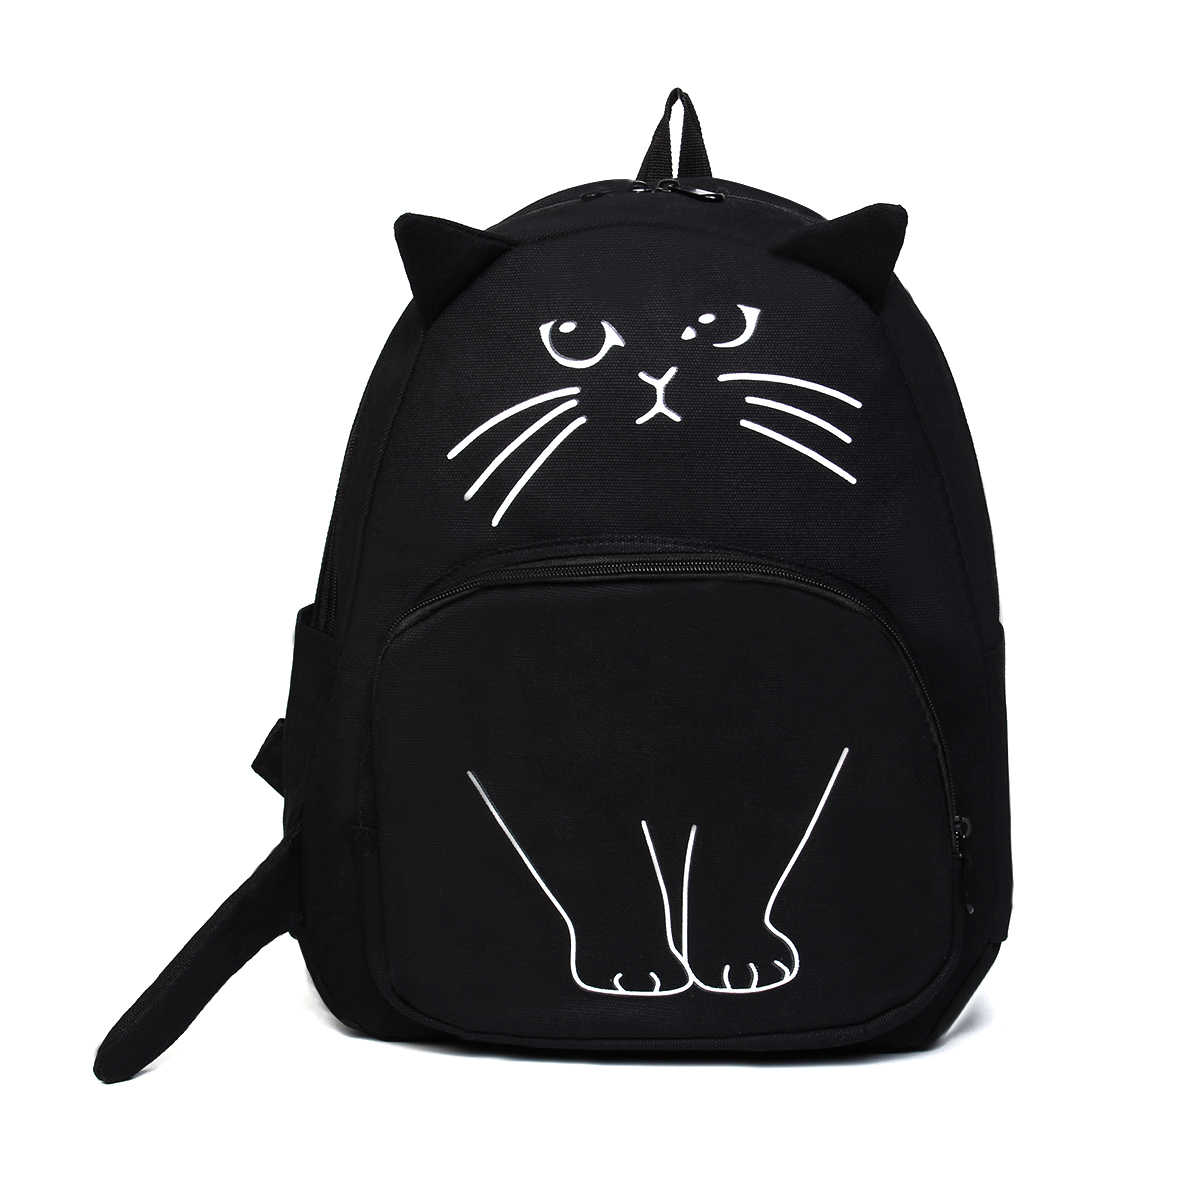 Osmond Women Cute Cat Backpack Black Canvas School Bag For Teenage Girls Schoolbag 3D Printing Backpack Travel Rucksack Mochila